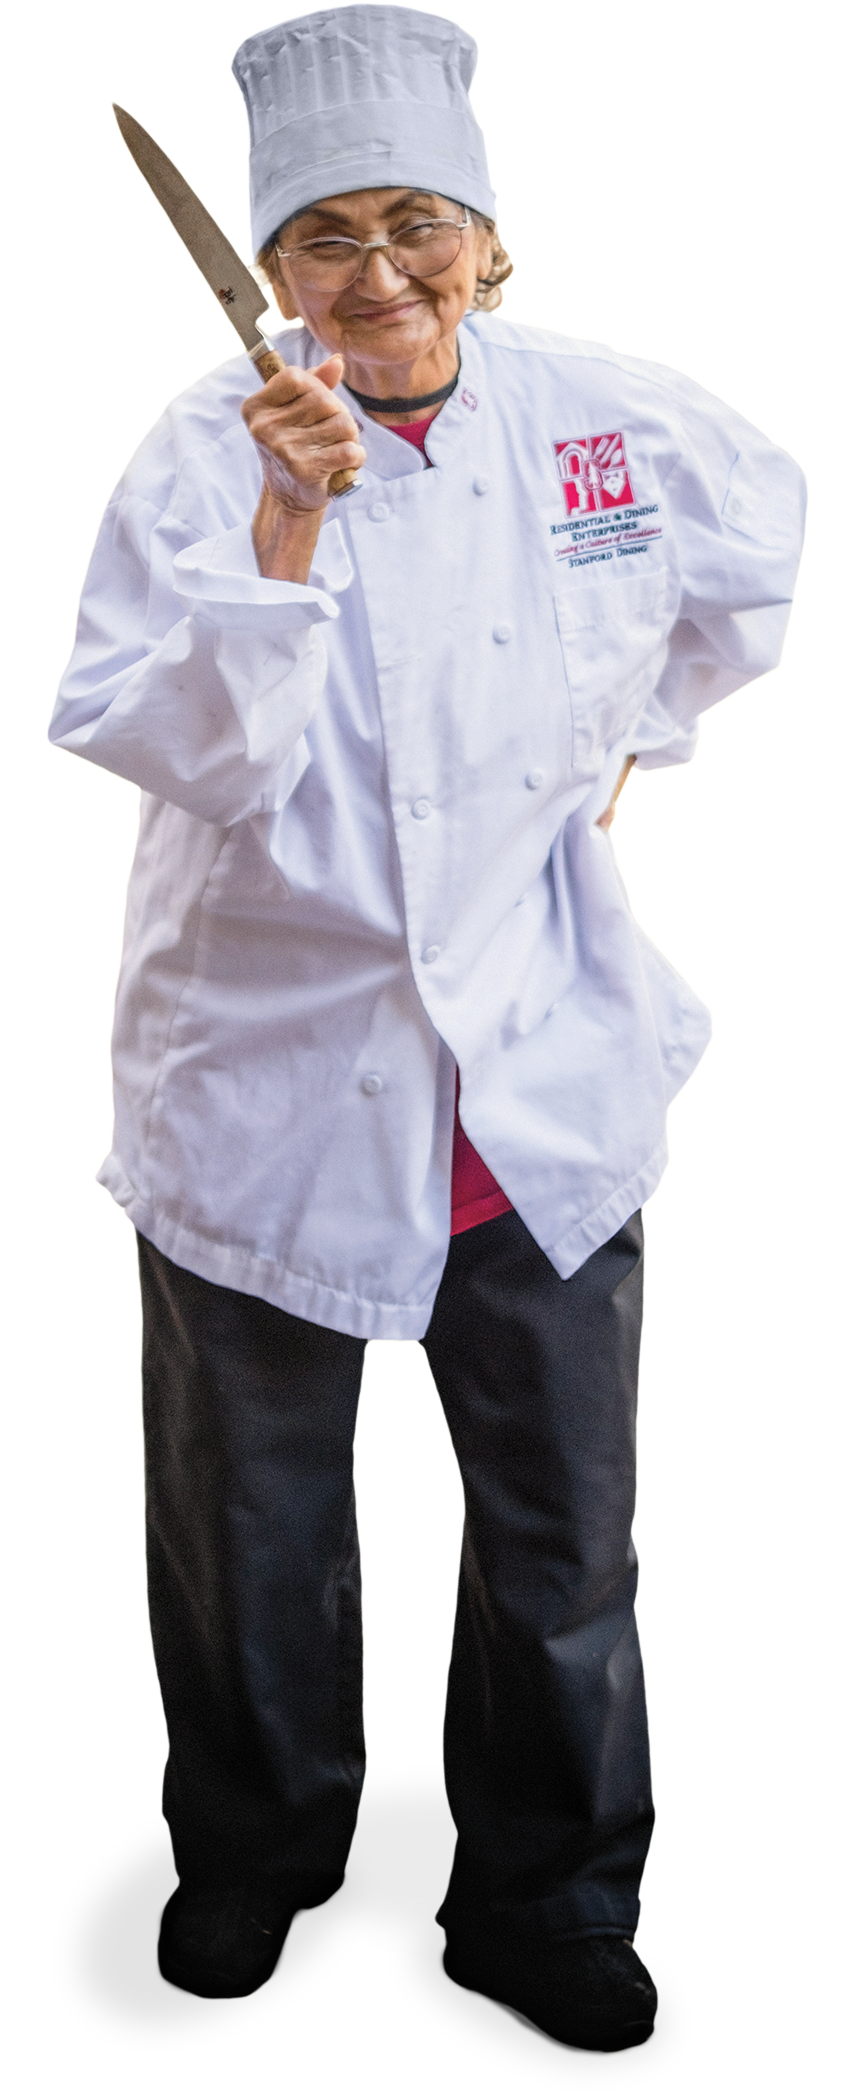 Ana Ziadeh wearing a chef outfit and holding a knife